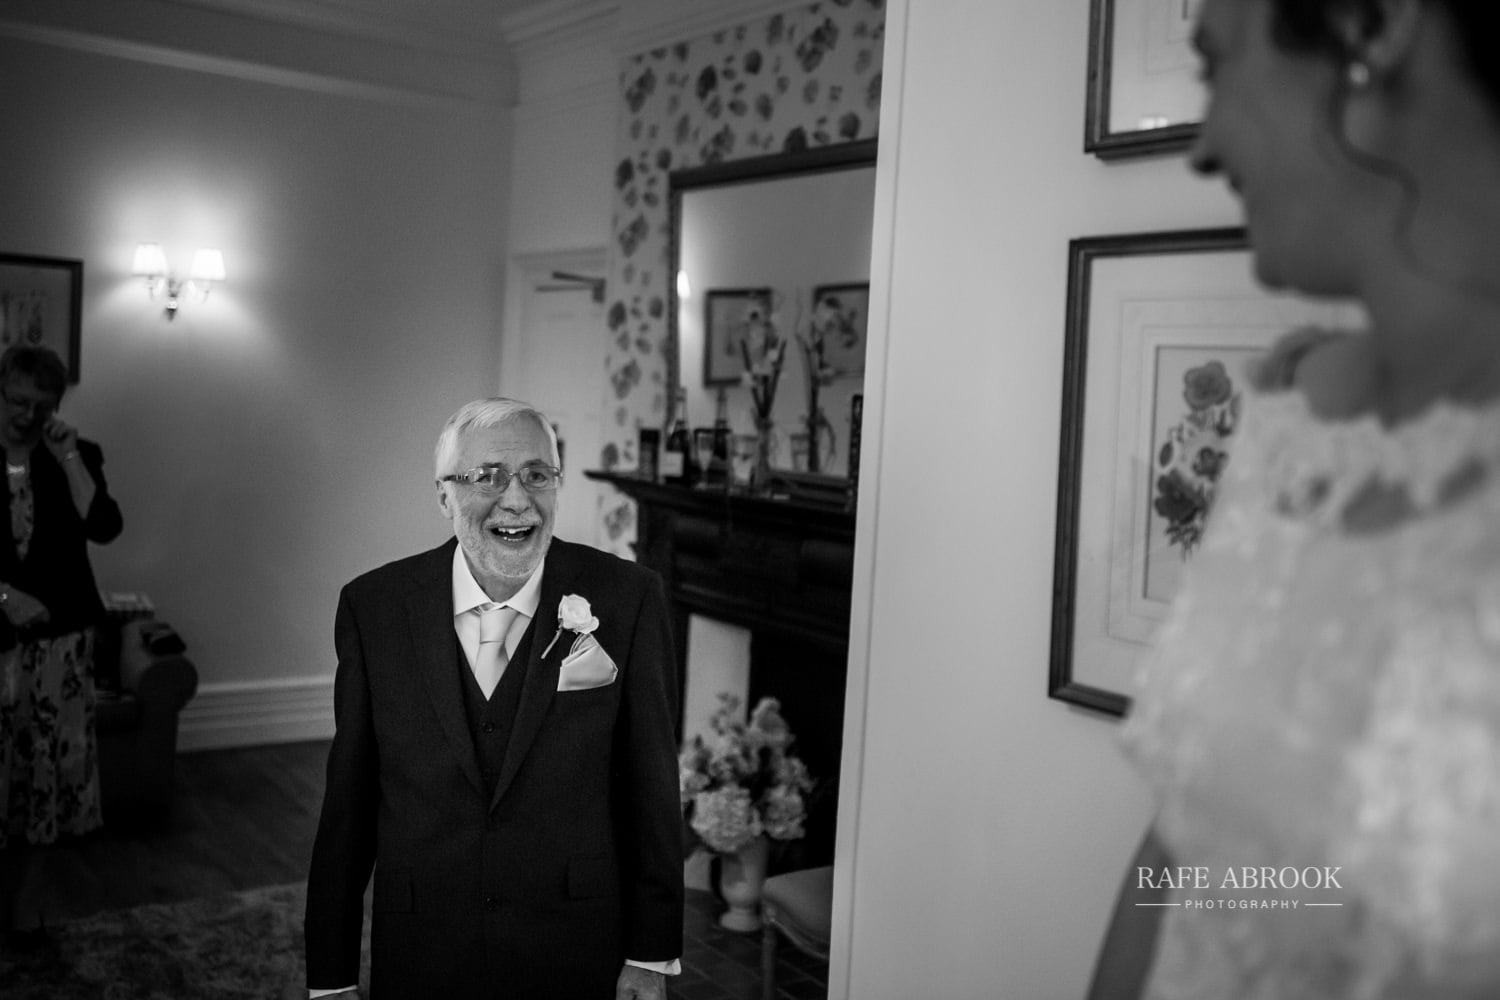 woodland manor hotel clapham bedford wedding hertfordshire wedding photographer-1043.jpg